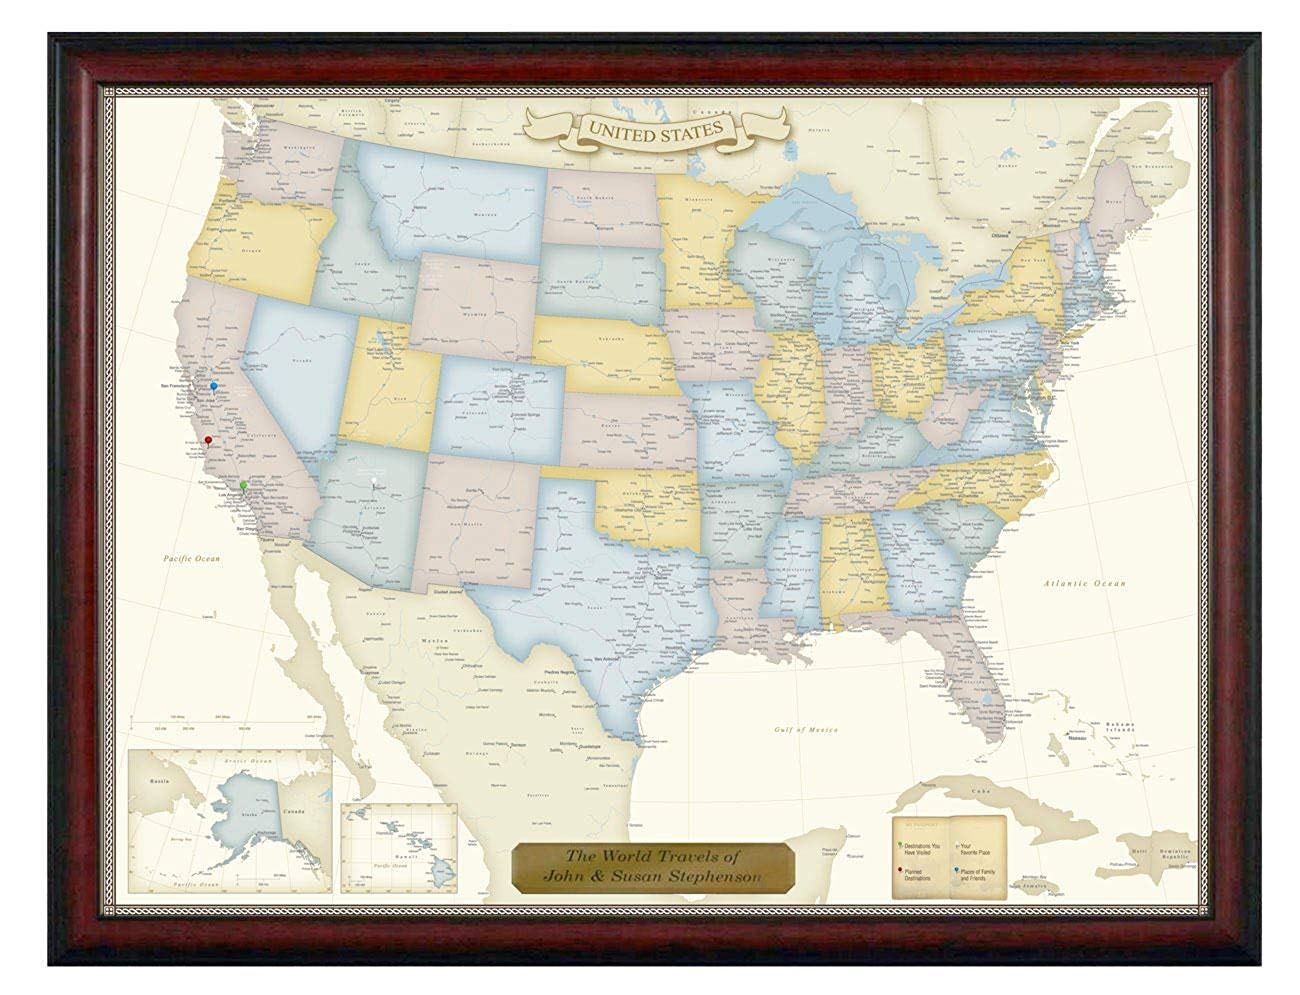 Personalized Push Pin United States Travel Map with Custom Brushed Gold Plaque